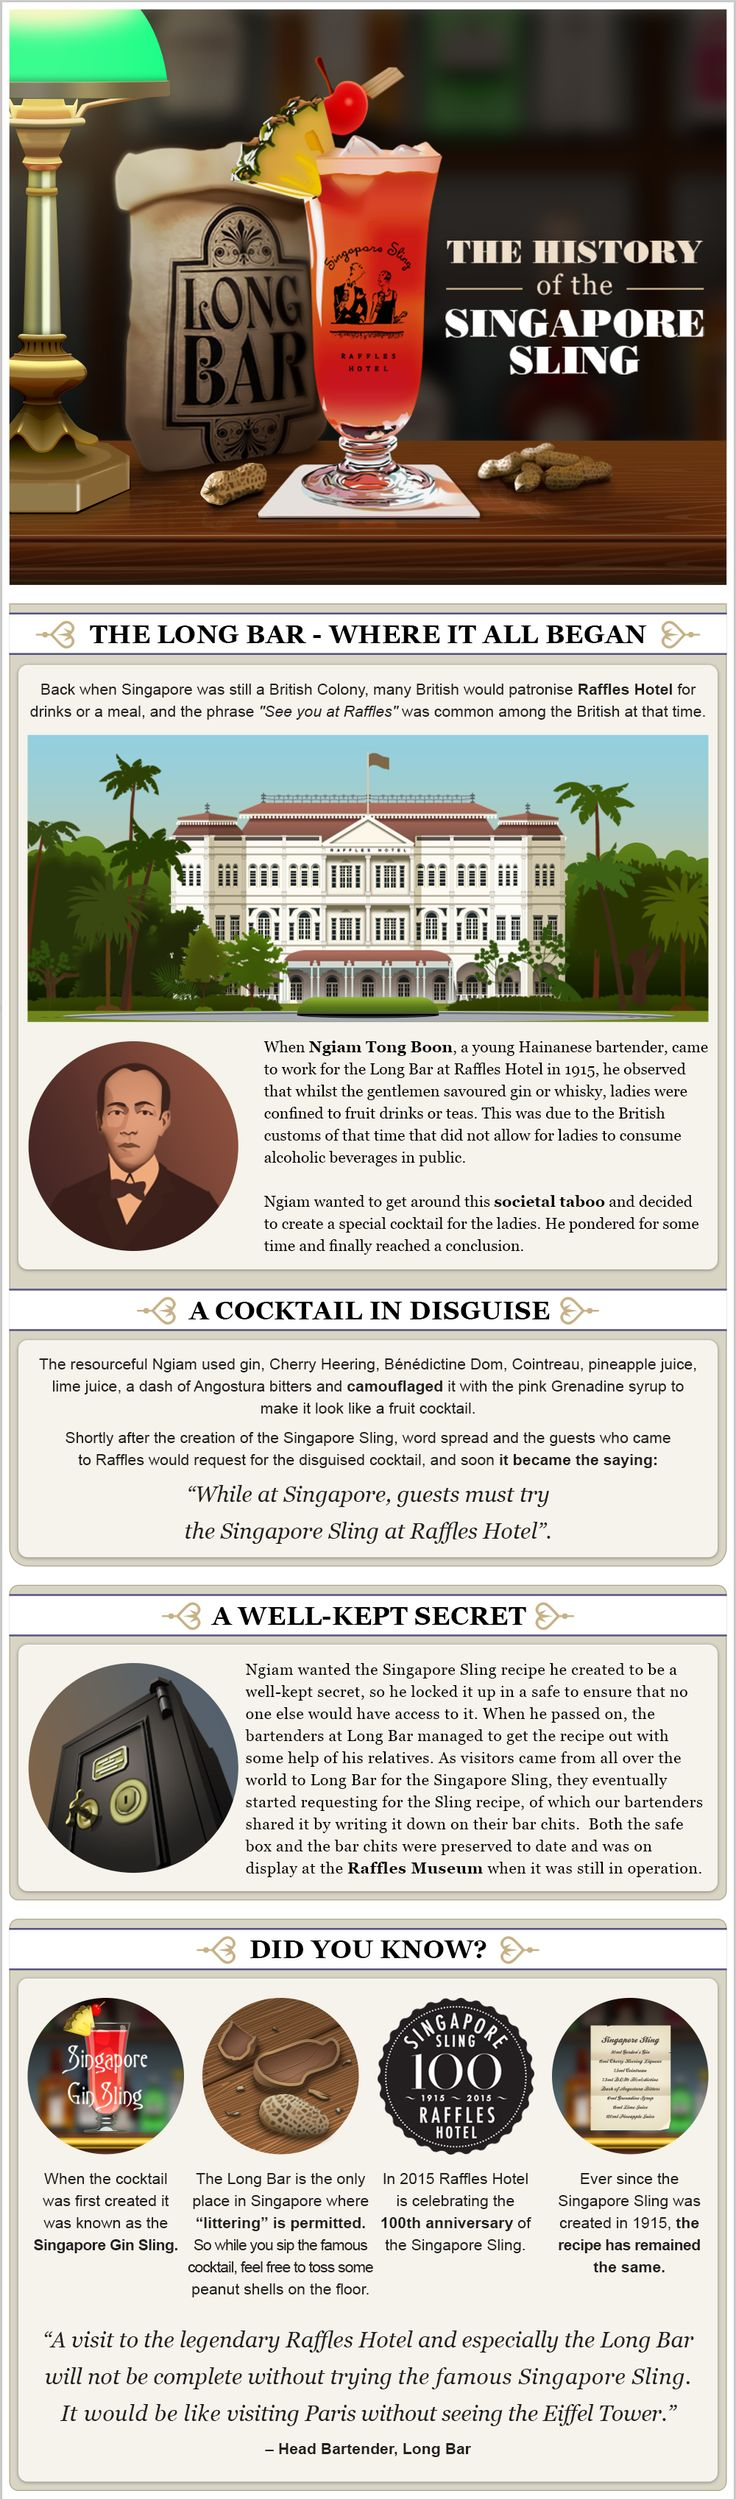 The History of the Singapore Sling #Infographic #Food #History